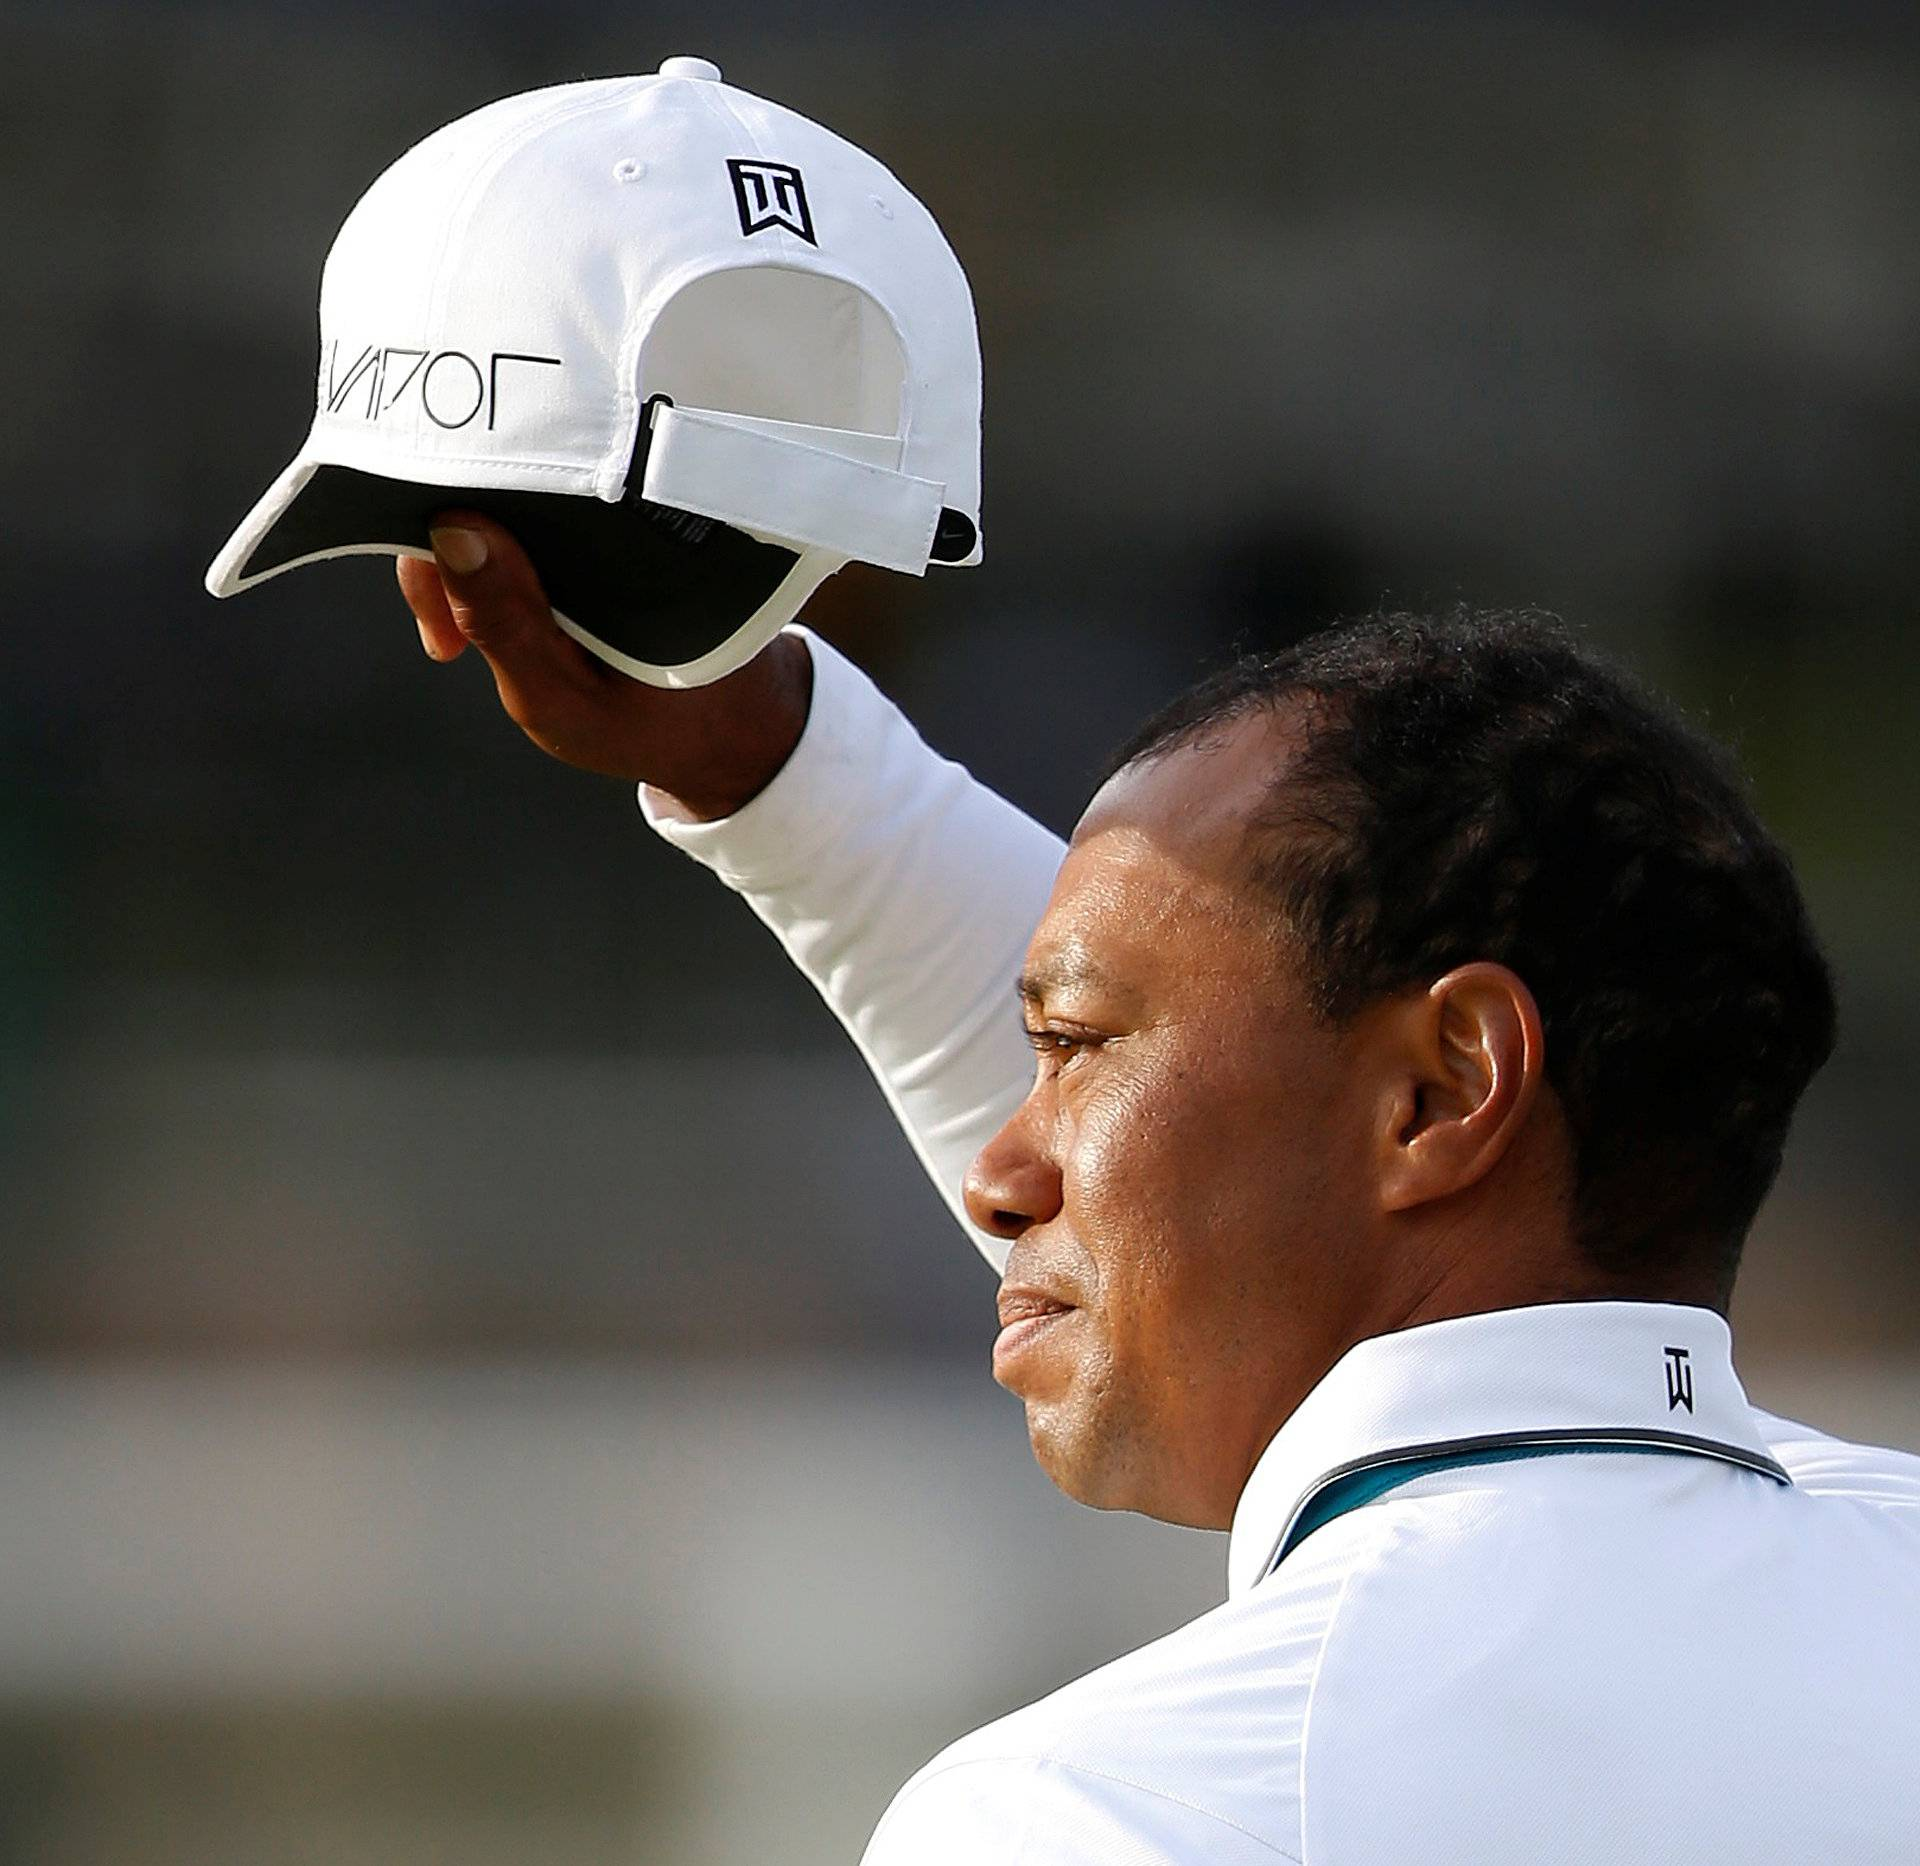 FILE PHOTO: Woods of the U.S. acknowledges the crowd as he walks off the 18th green during the second round of the British Open golf championship on the Old Course in St. Andrews, Scotland